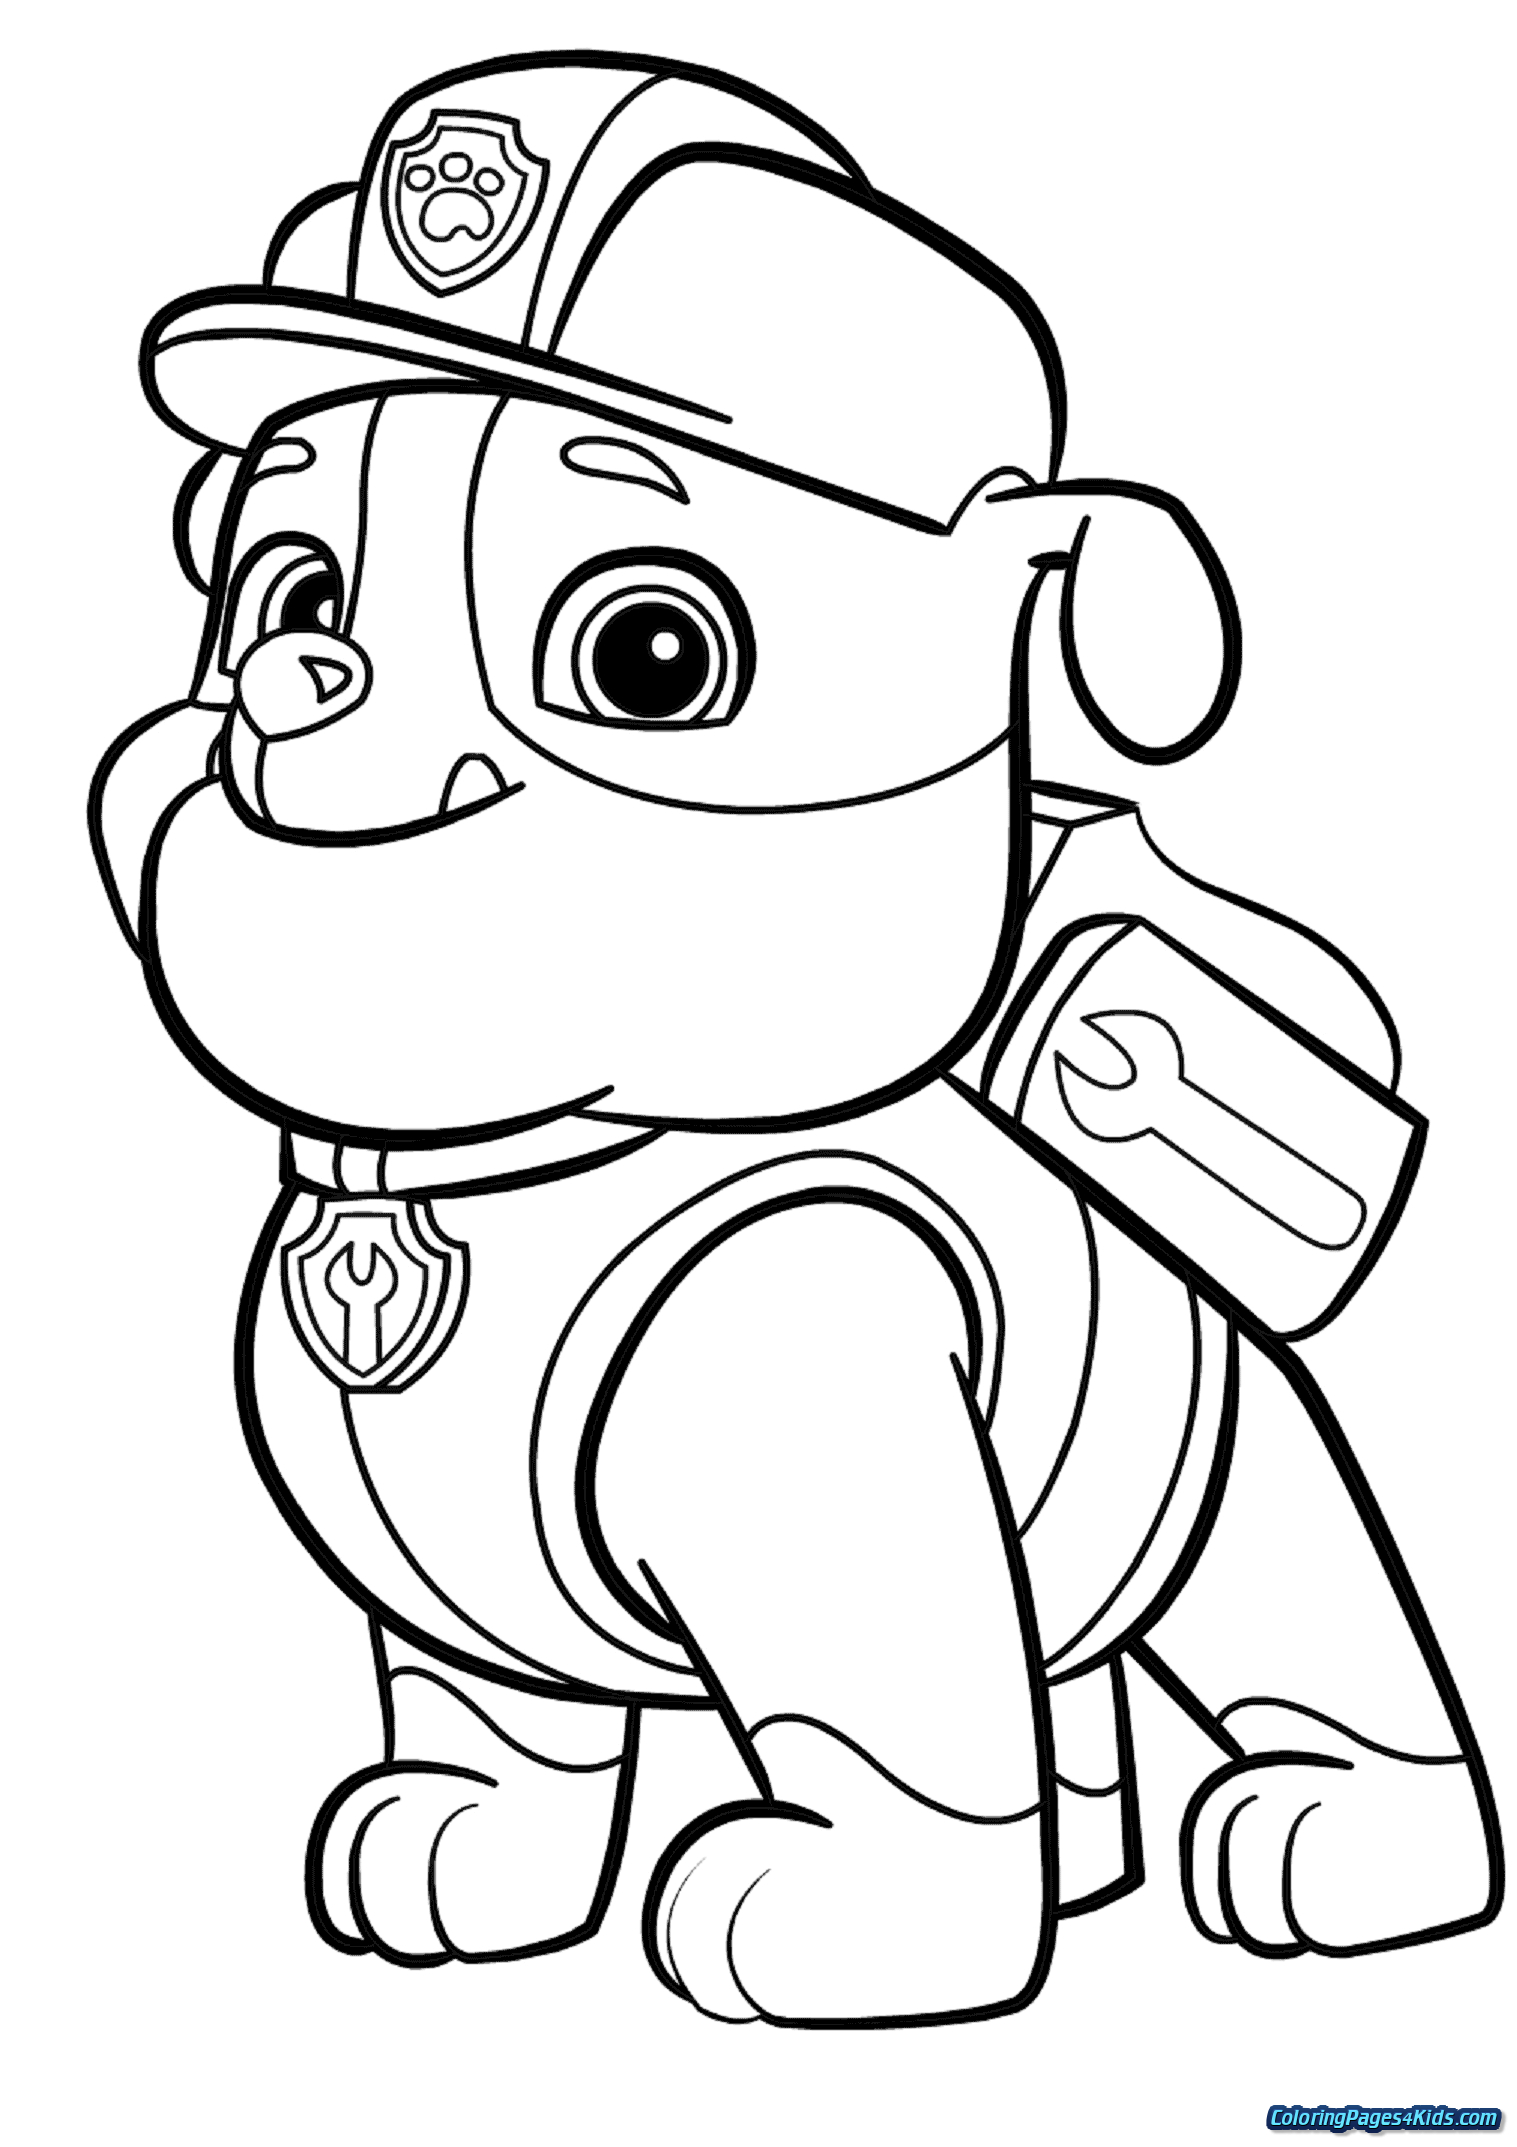 free printable paw patrol coloring pages paw patrol badges coloring pages at getcoloringscom patrol printable coloring free paw pages